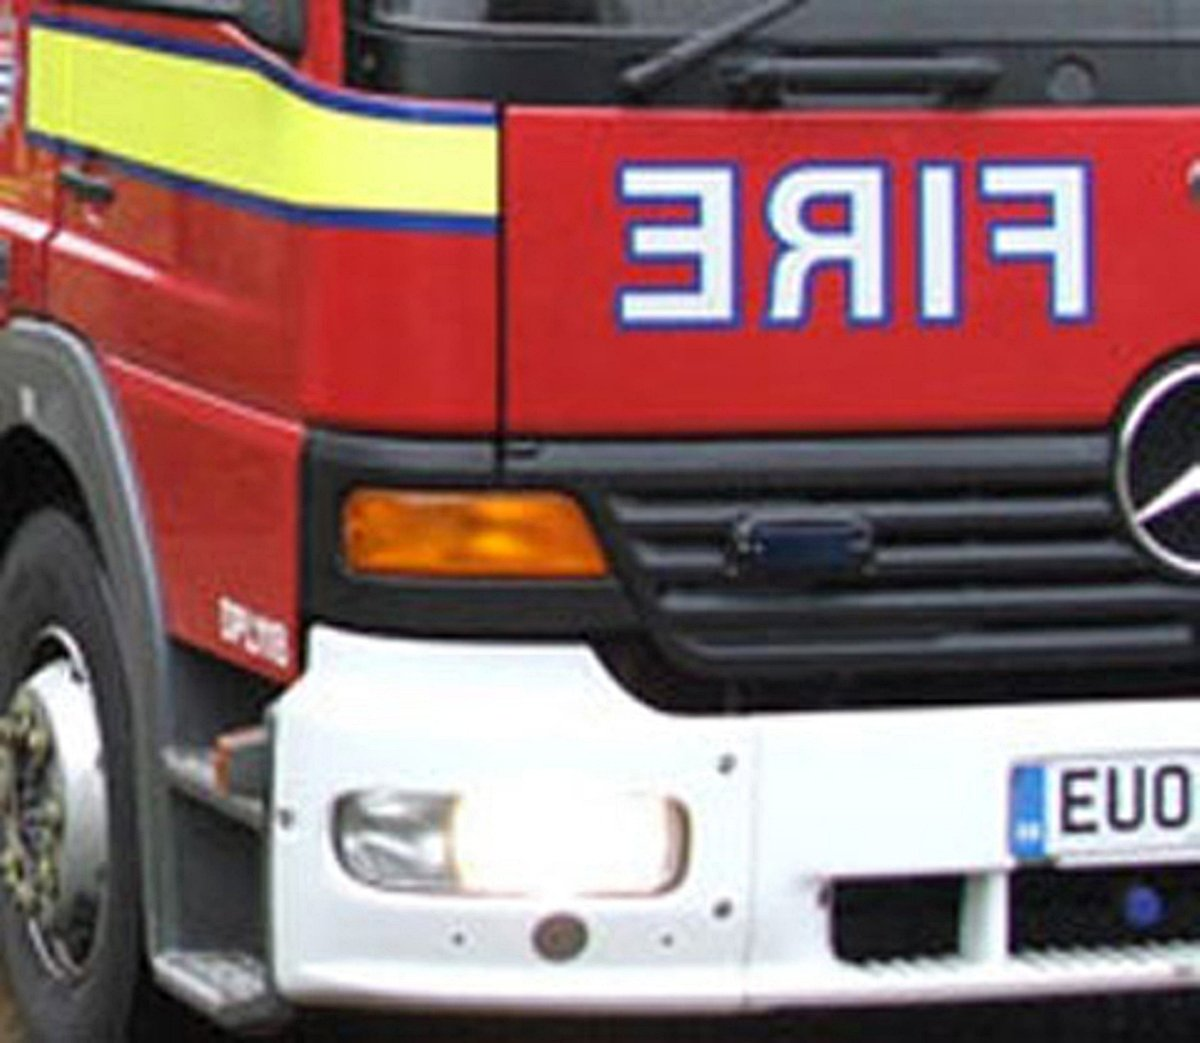 The fire brigade was called to a fire at Boots, Orpington High Street, yesterday evening.